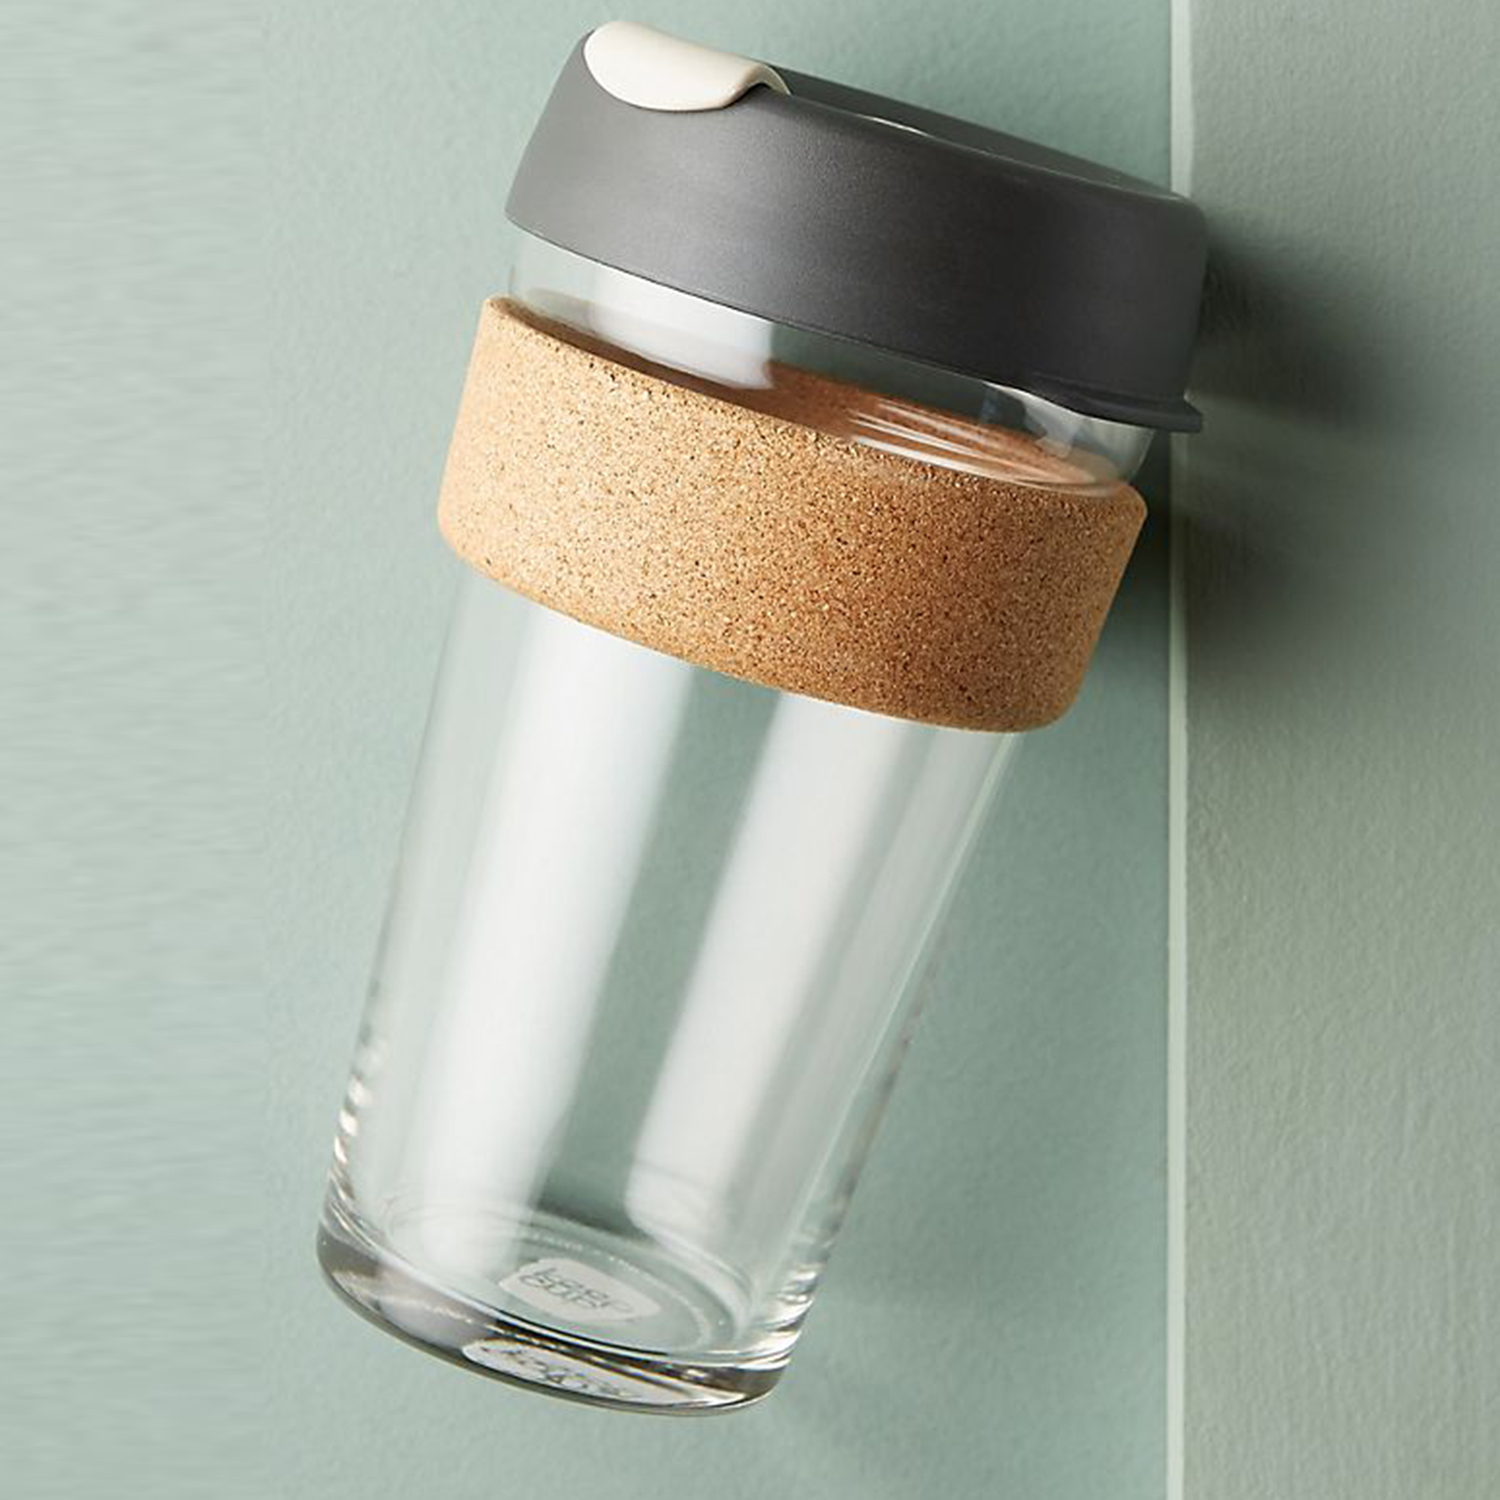 KeepCup Cork Edition 16 Oz Reusable Cup